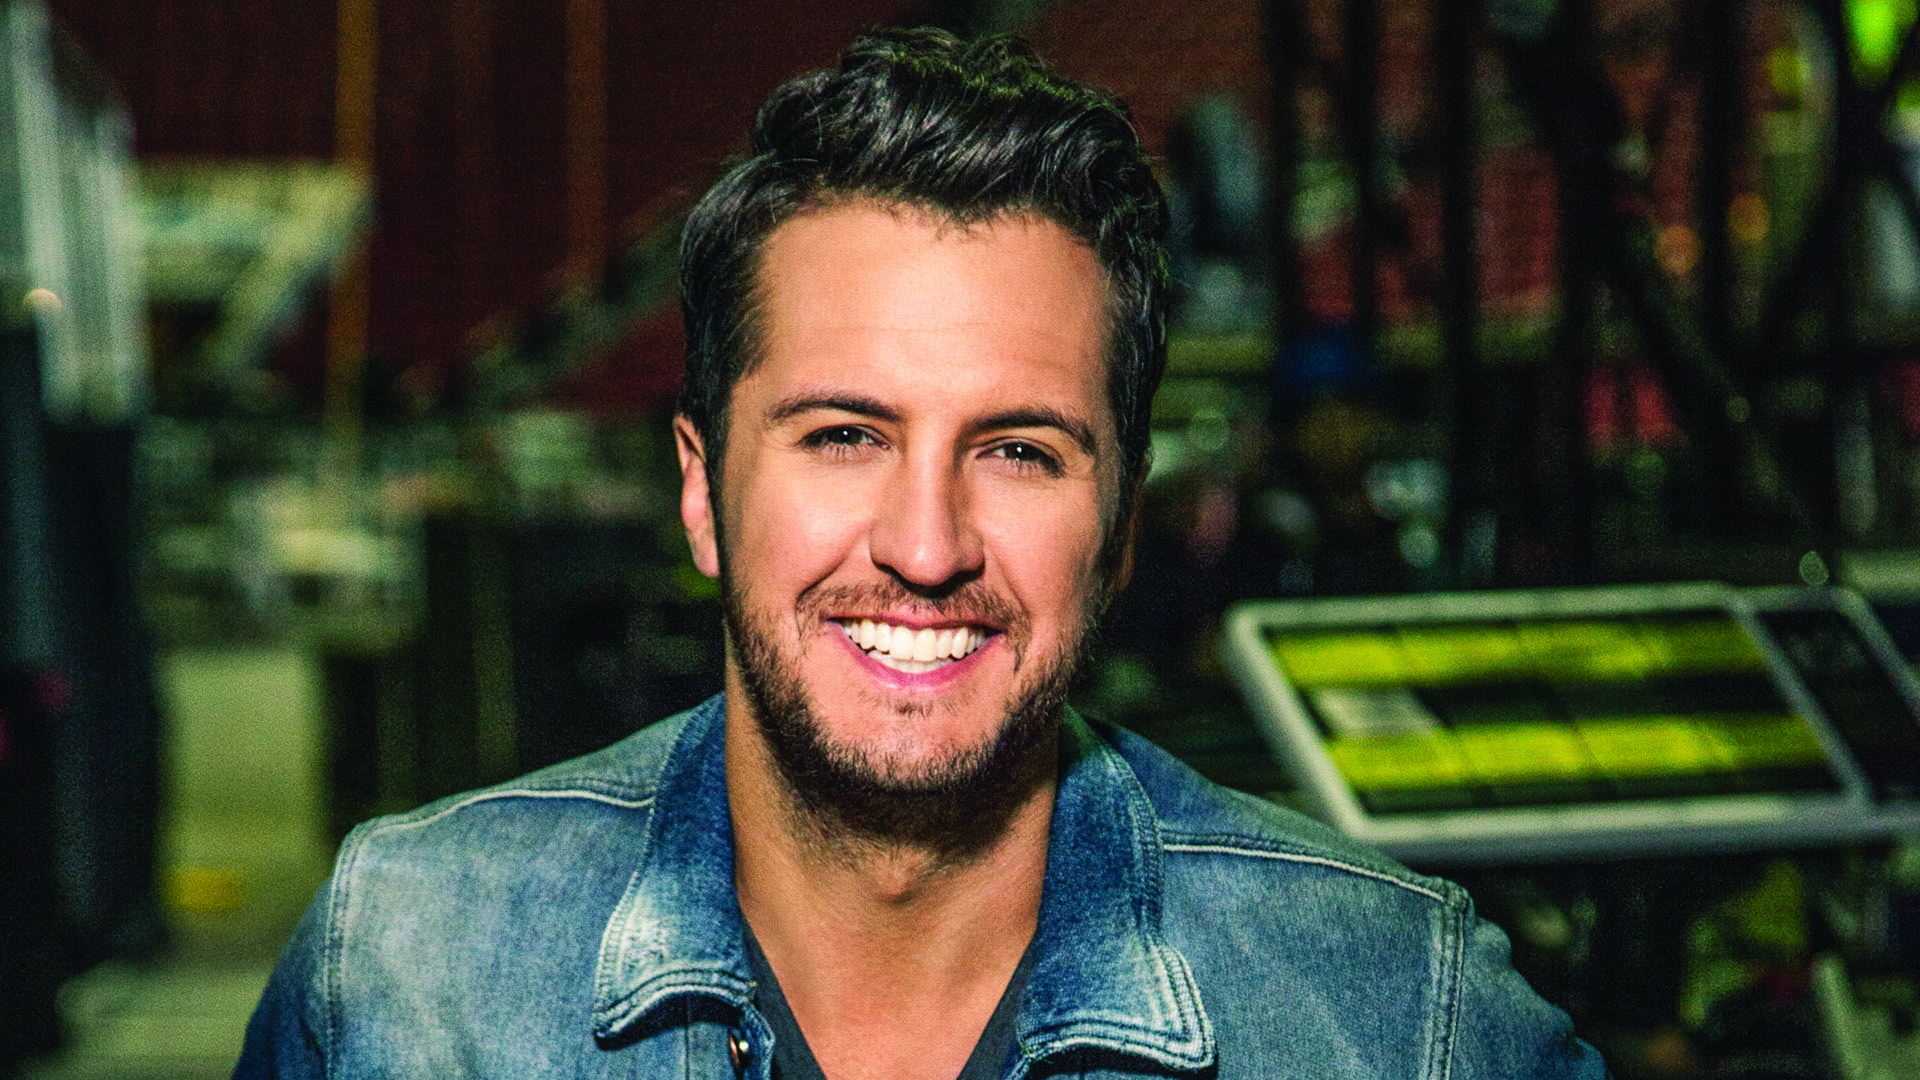 Luke bryan latest news images and photos crypticimages voltagebd Gallery